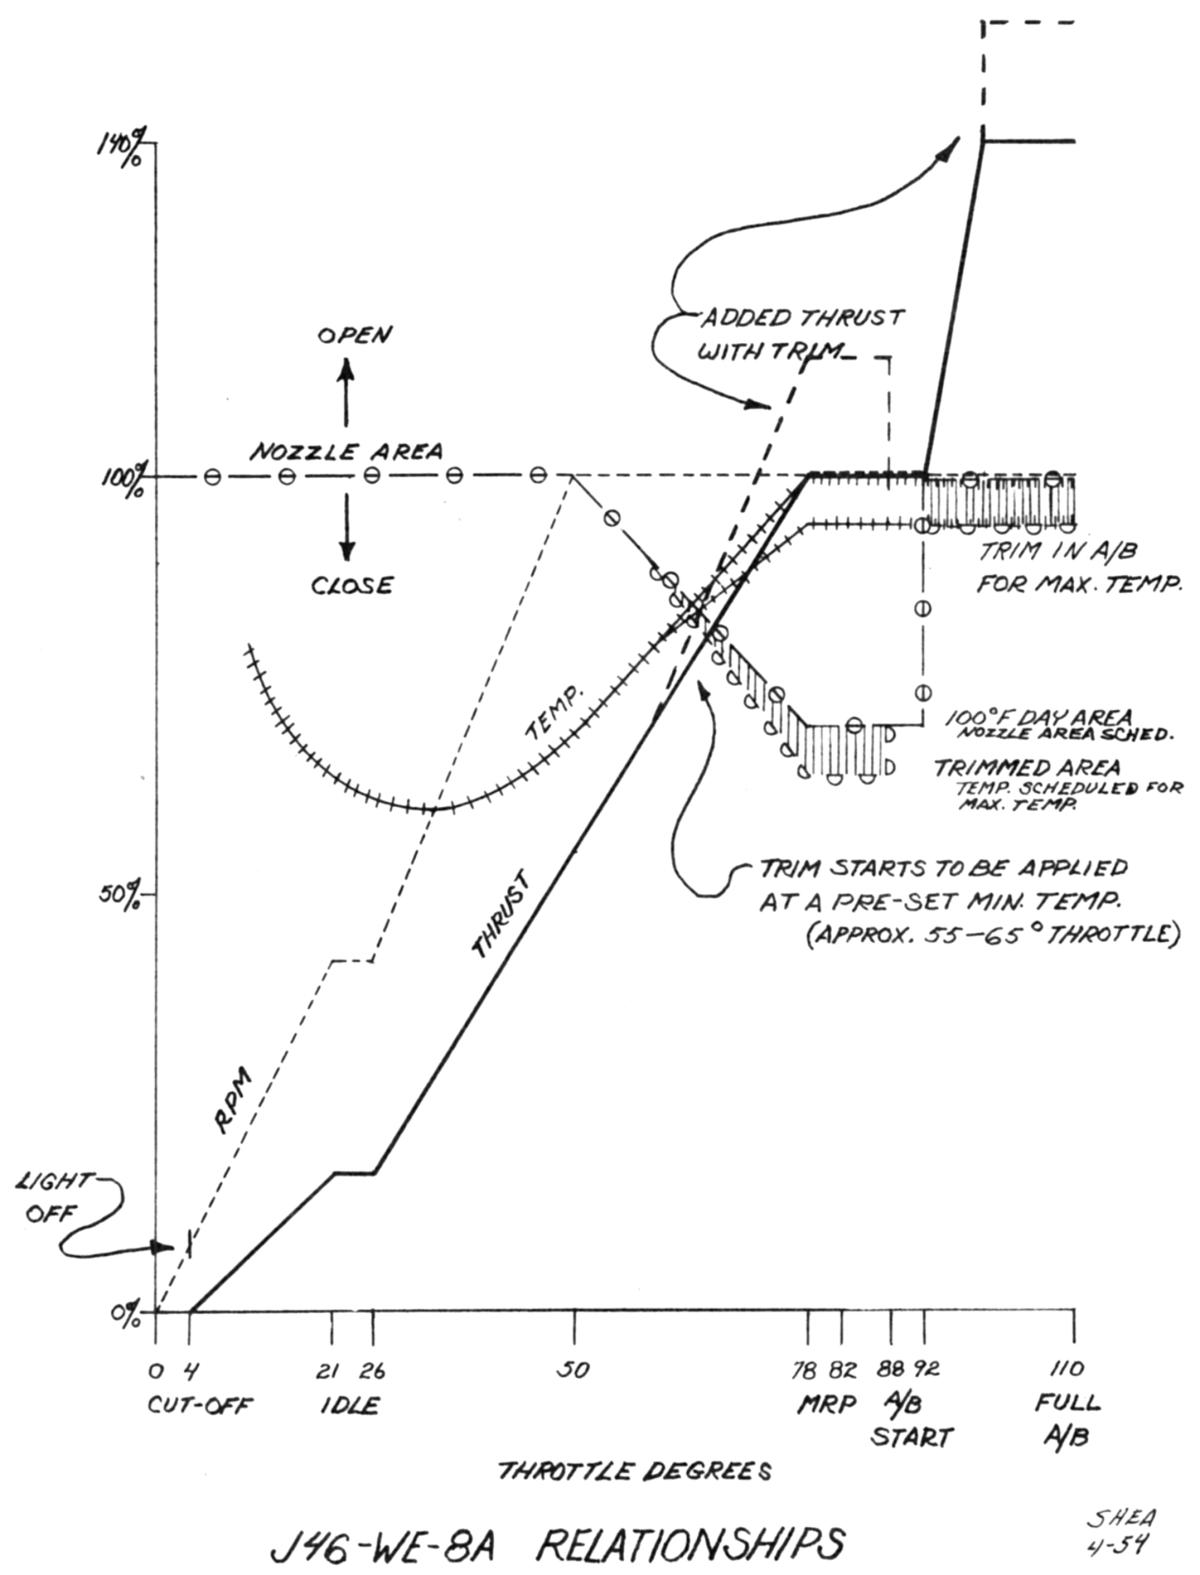 J46 Part 1 Diagram Showing The Operation Of An Axial Flow Turbojet Engine J 46 We 8b Assembly Hagley Museum And Library